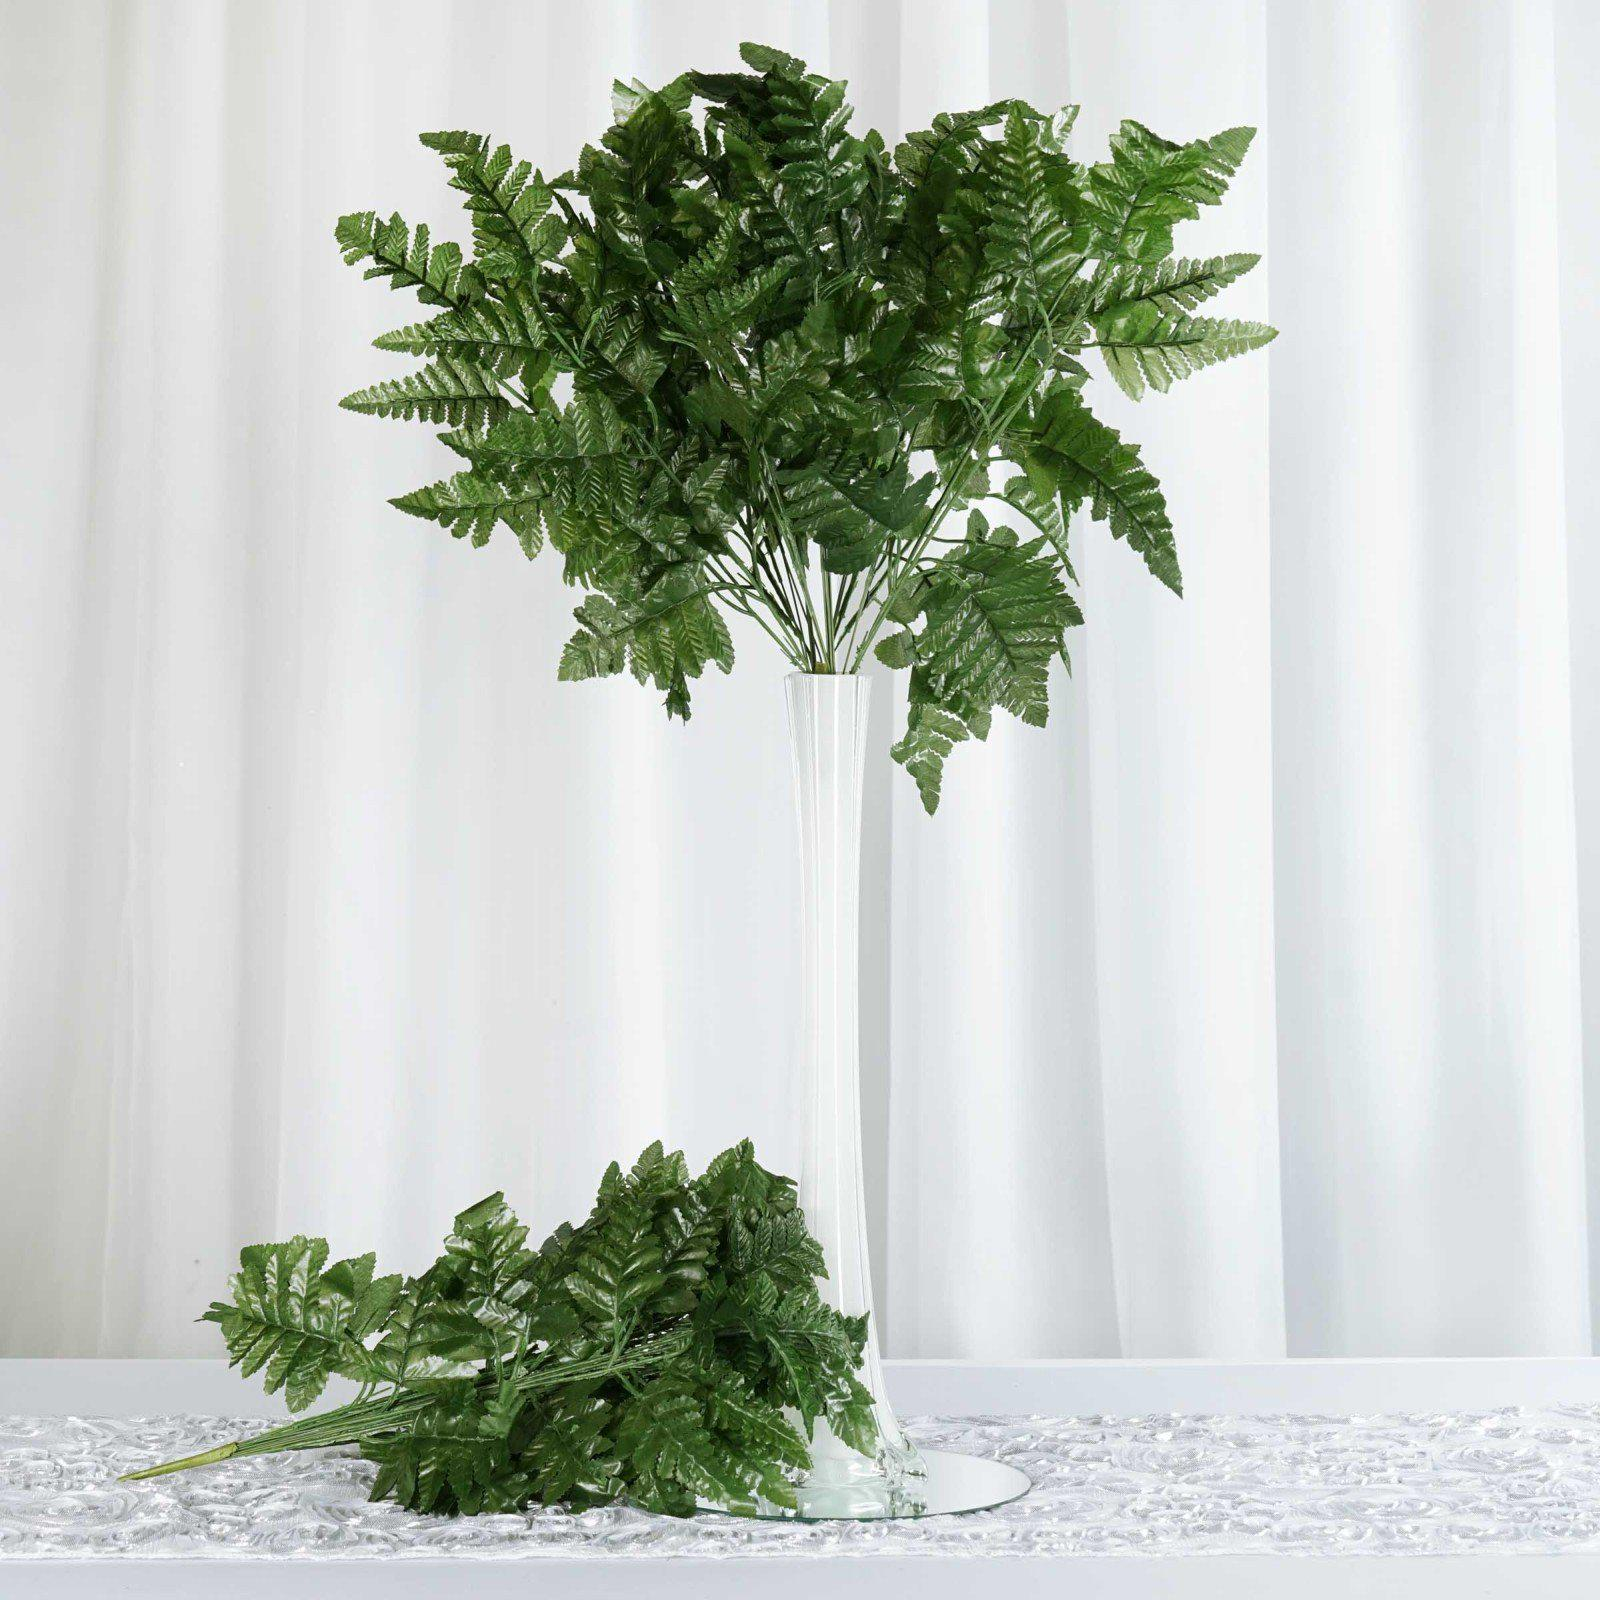 144 Wholesale Artificial Green Leather Fern Branches Vase ...